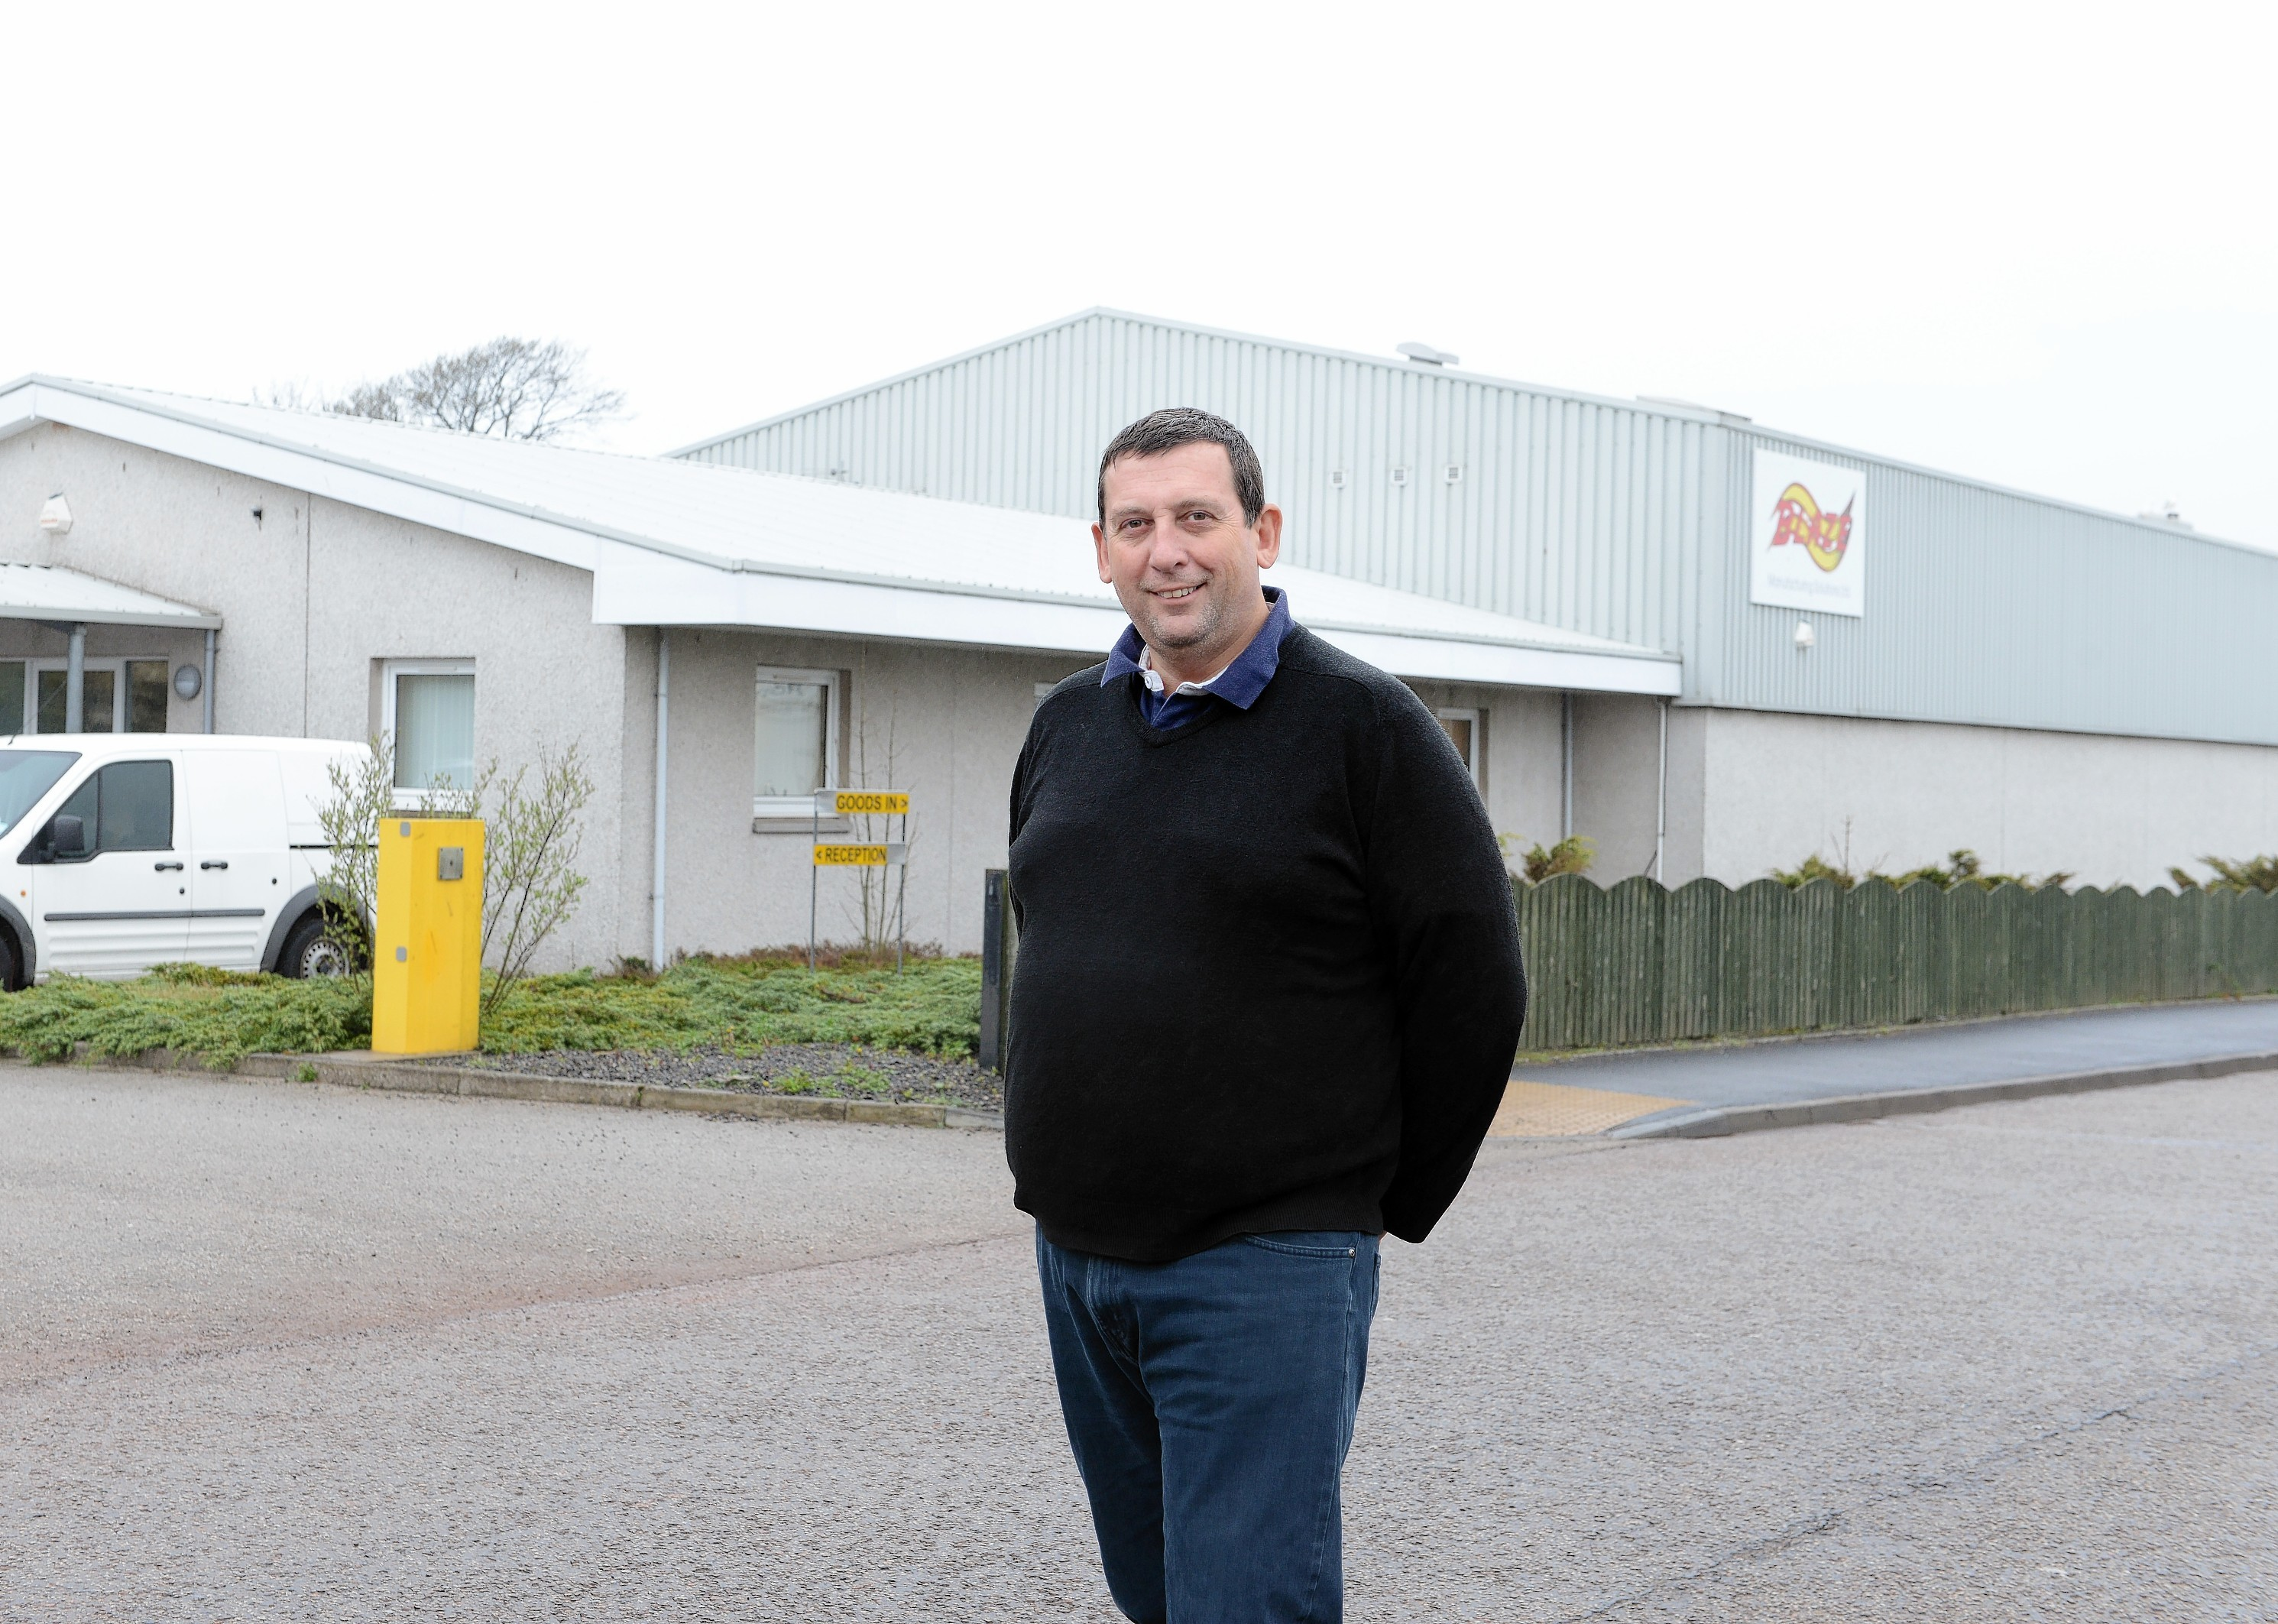 Howard Johnson, managing director of Blaze Manufacturing